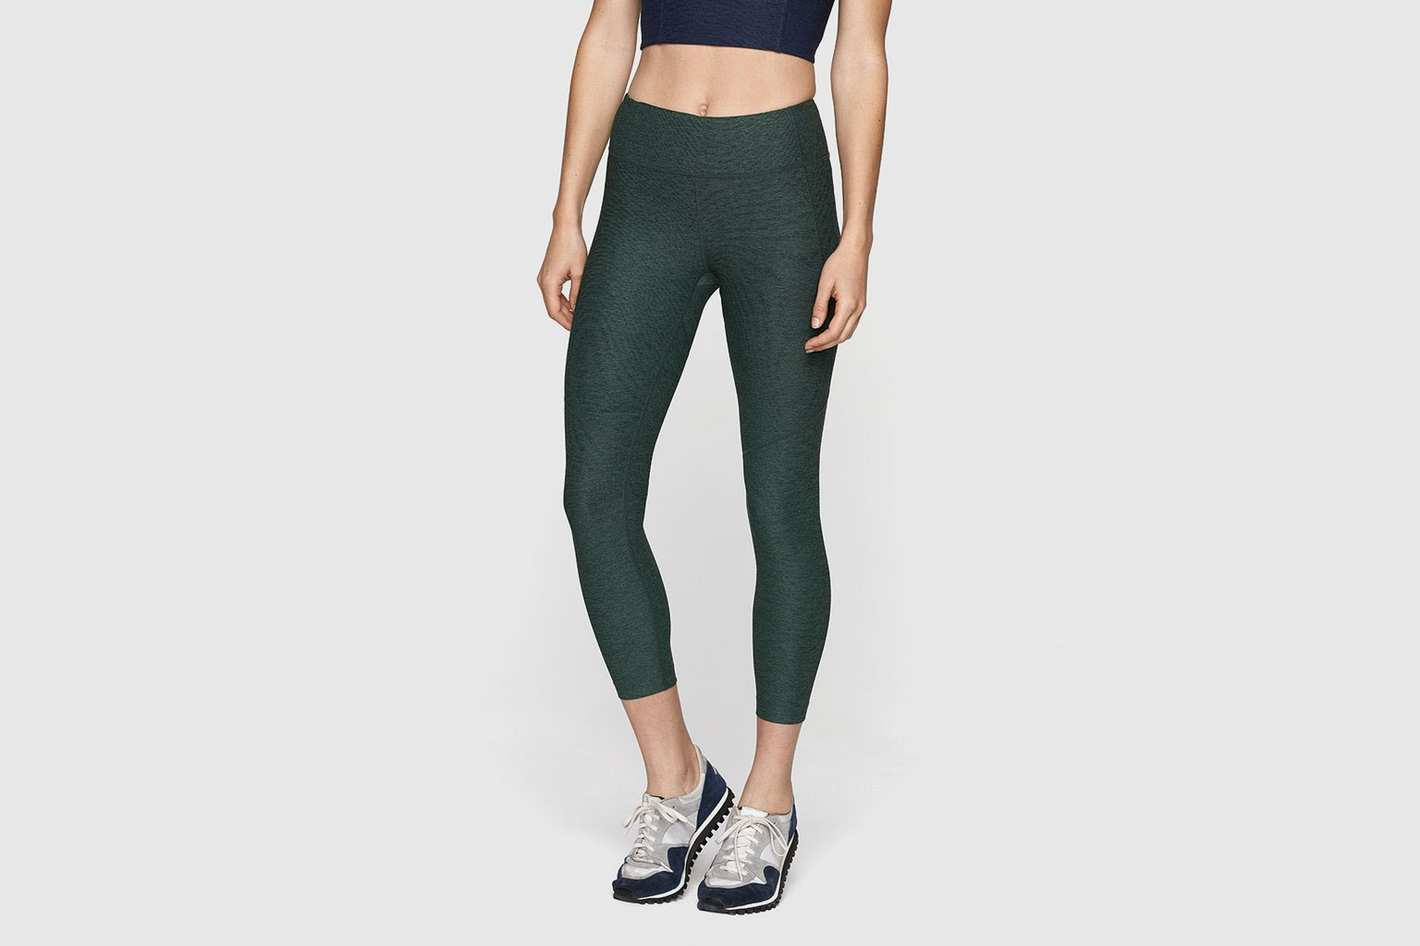 Outdoor Voices 3/4 Warmup Leggings (Hunter)